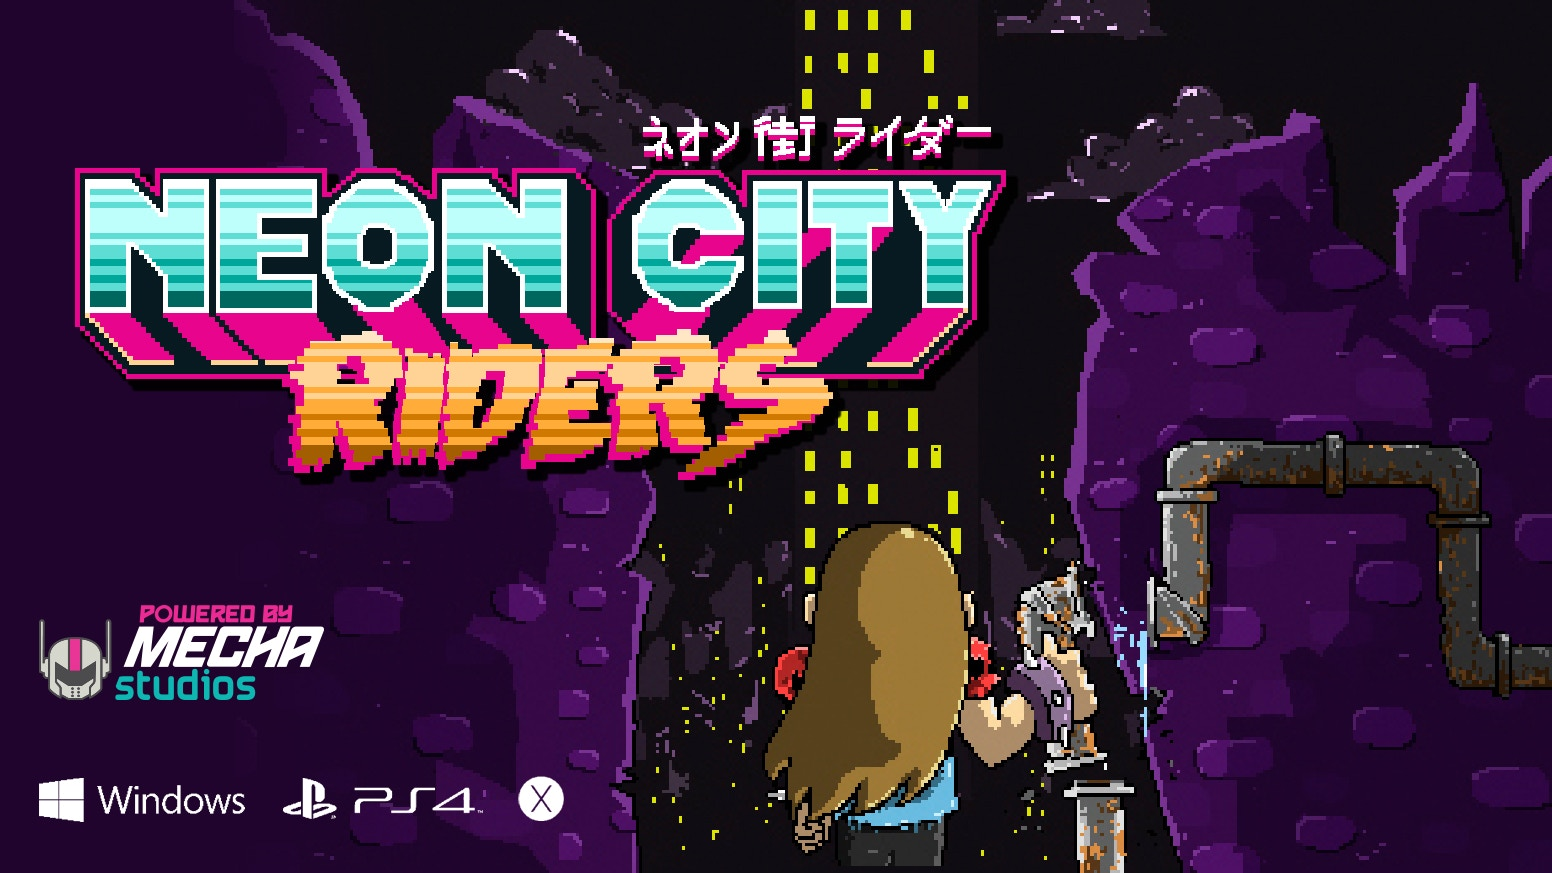 Explore a decaying futuristic city in search of items, superpowers and companions to free all the turfs and unite their people again!